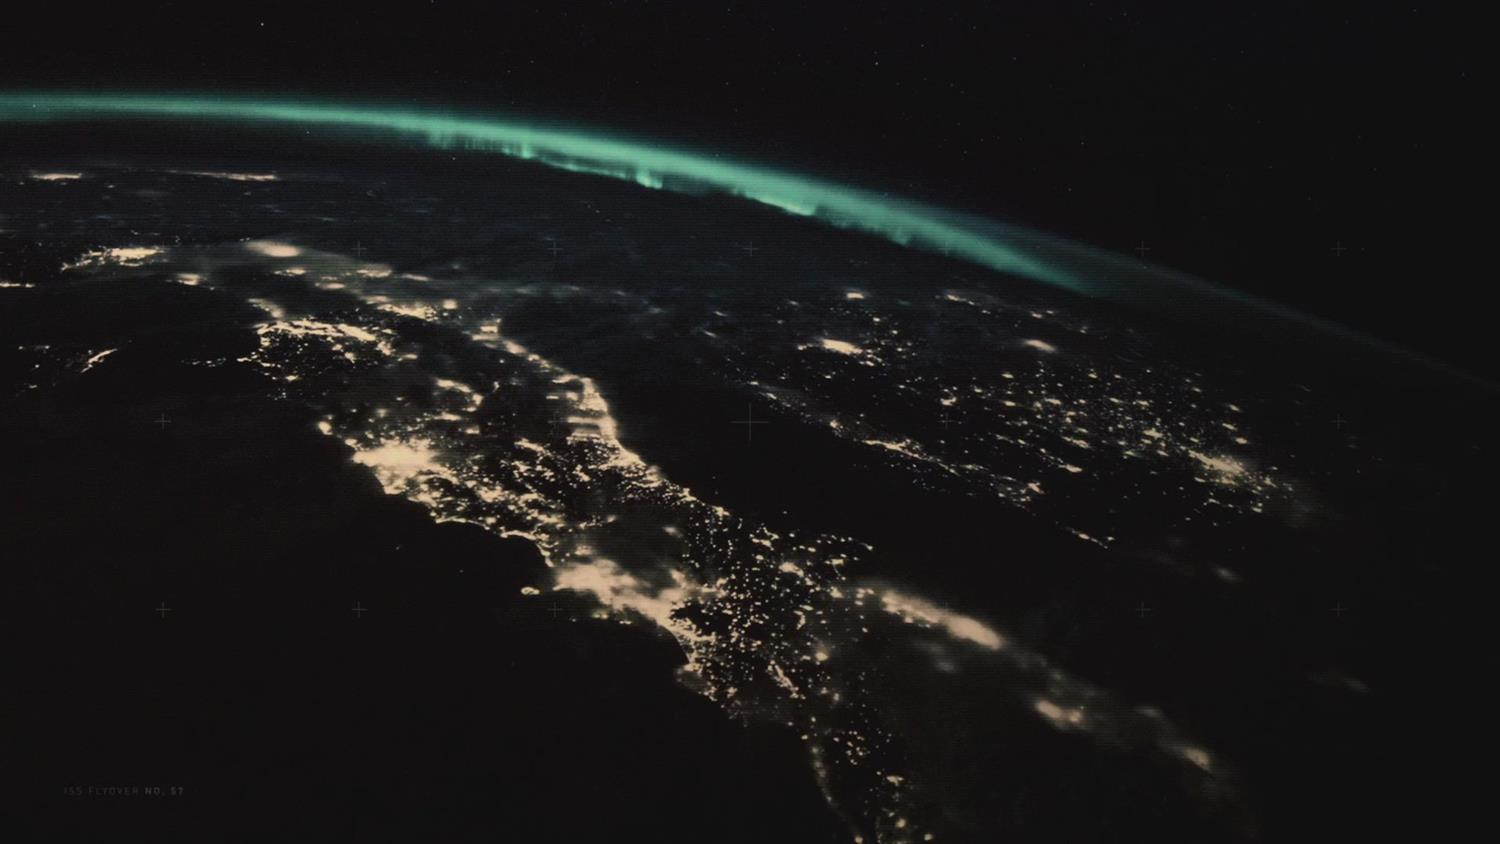 3d Asteroid Wallpaper Syfy Watch Full Episodes The Expanse Opening Credits